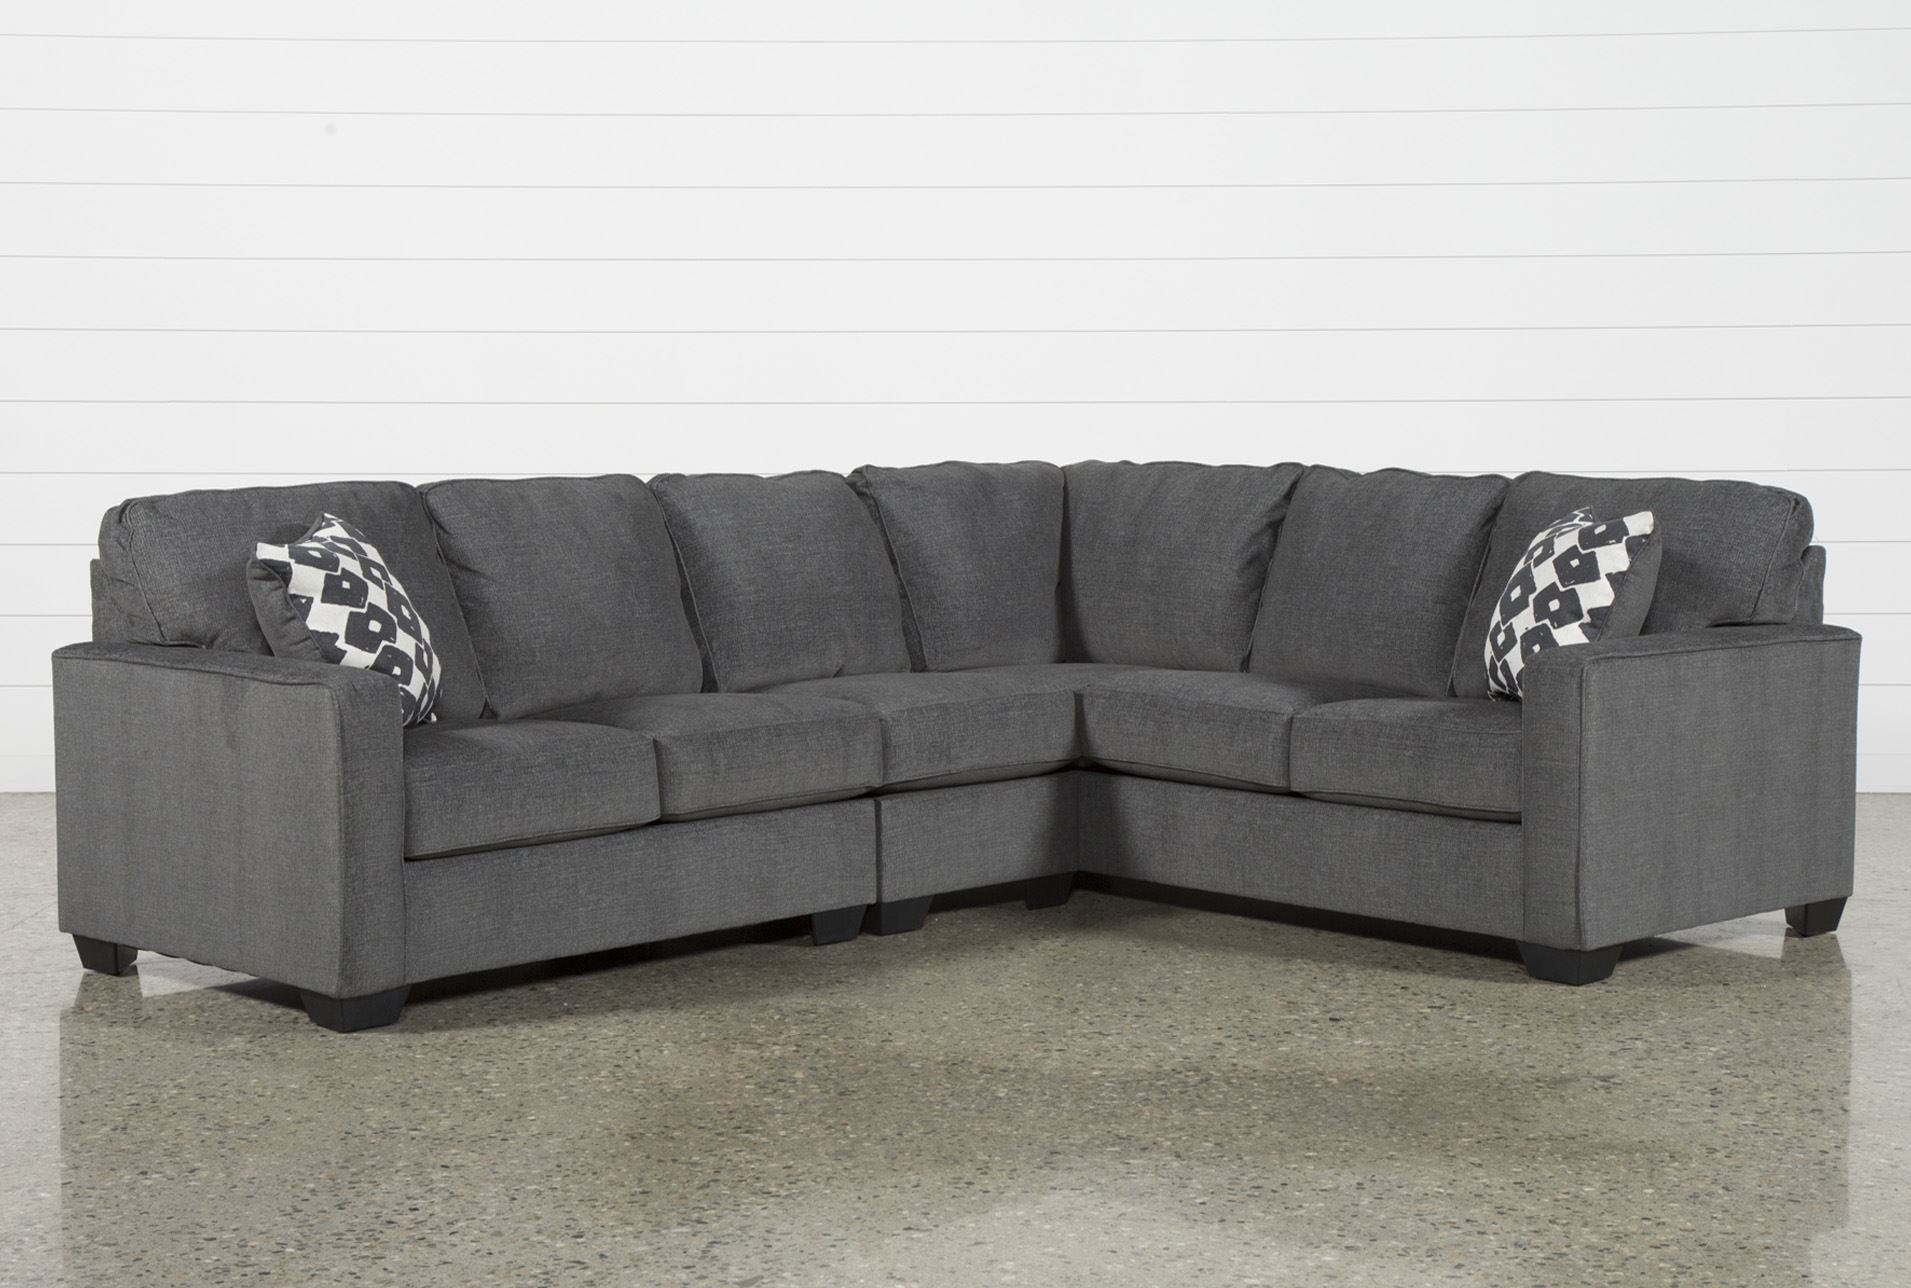 Turdur 3 Piece Sectional W/laf Loveseat In 2018 | Products Throughout Mcdade Graphite Sofa Chairs (View 3 of 20)